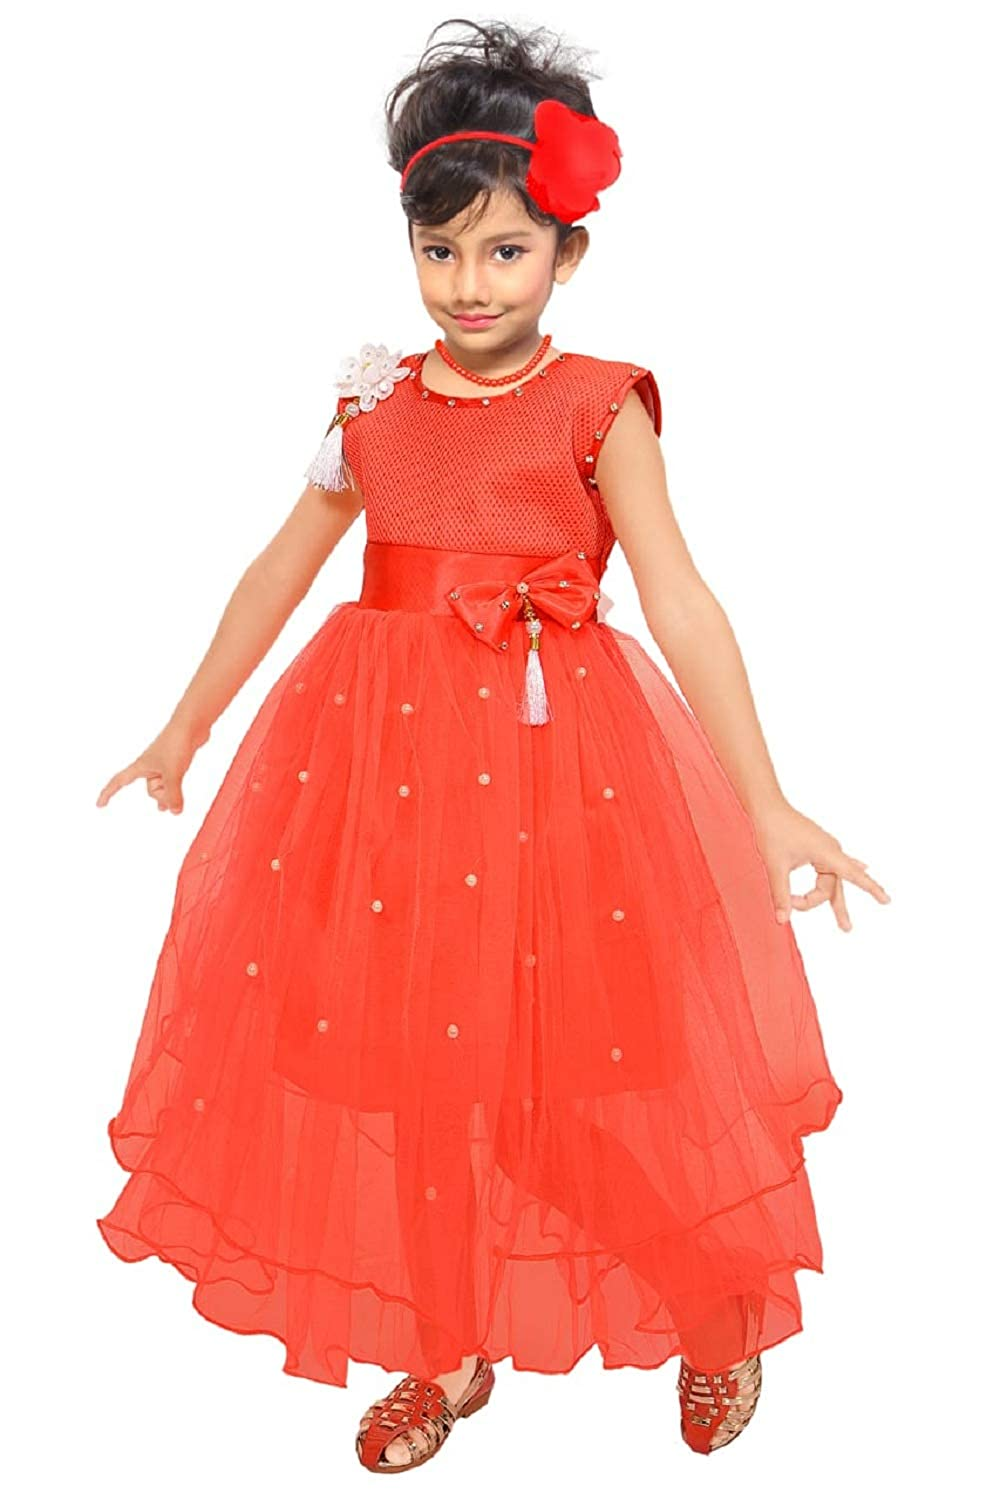 3a78730b91 ARK Cute Baby Fashion Maxi Full Length Dresses Frock Girl s Bright Party  Casual Wear Frock Dress for Baby Girls  Amazon.in  Clothing   Accessories